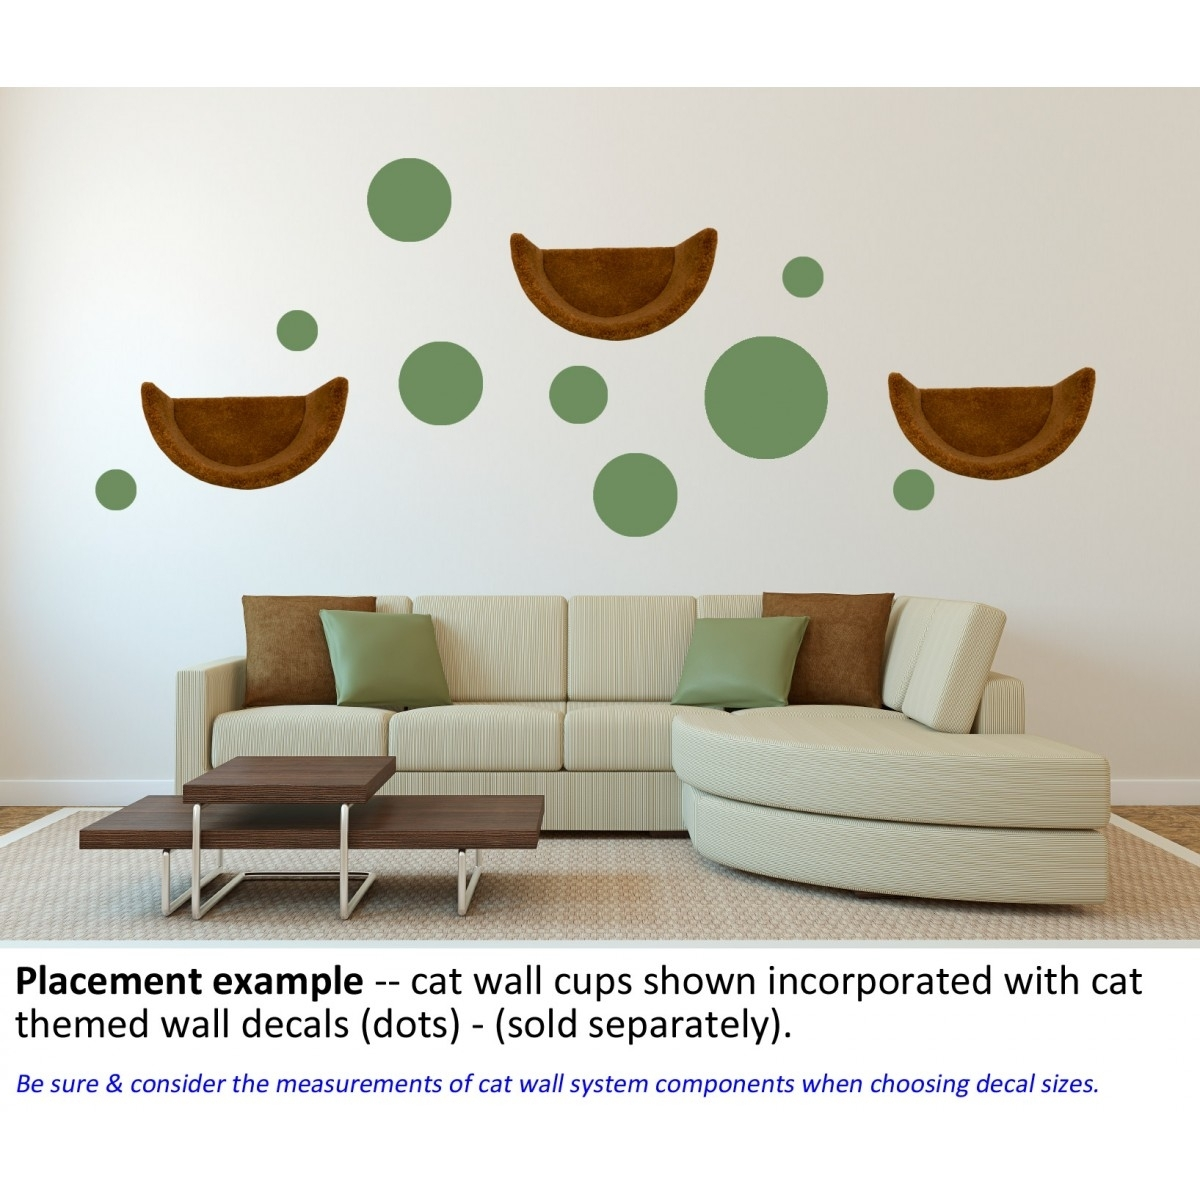 Themed Wall Accent Decal – Dots & Circles Within Most Up To Date Wall Accent Decals (View 15 of 15)